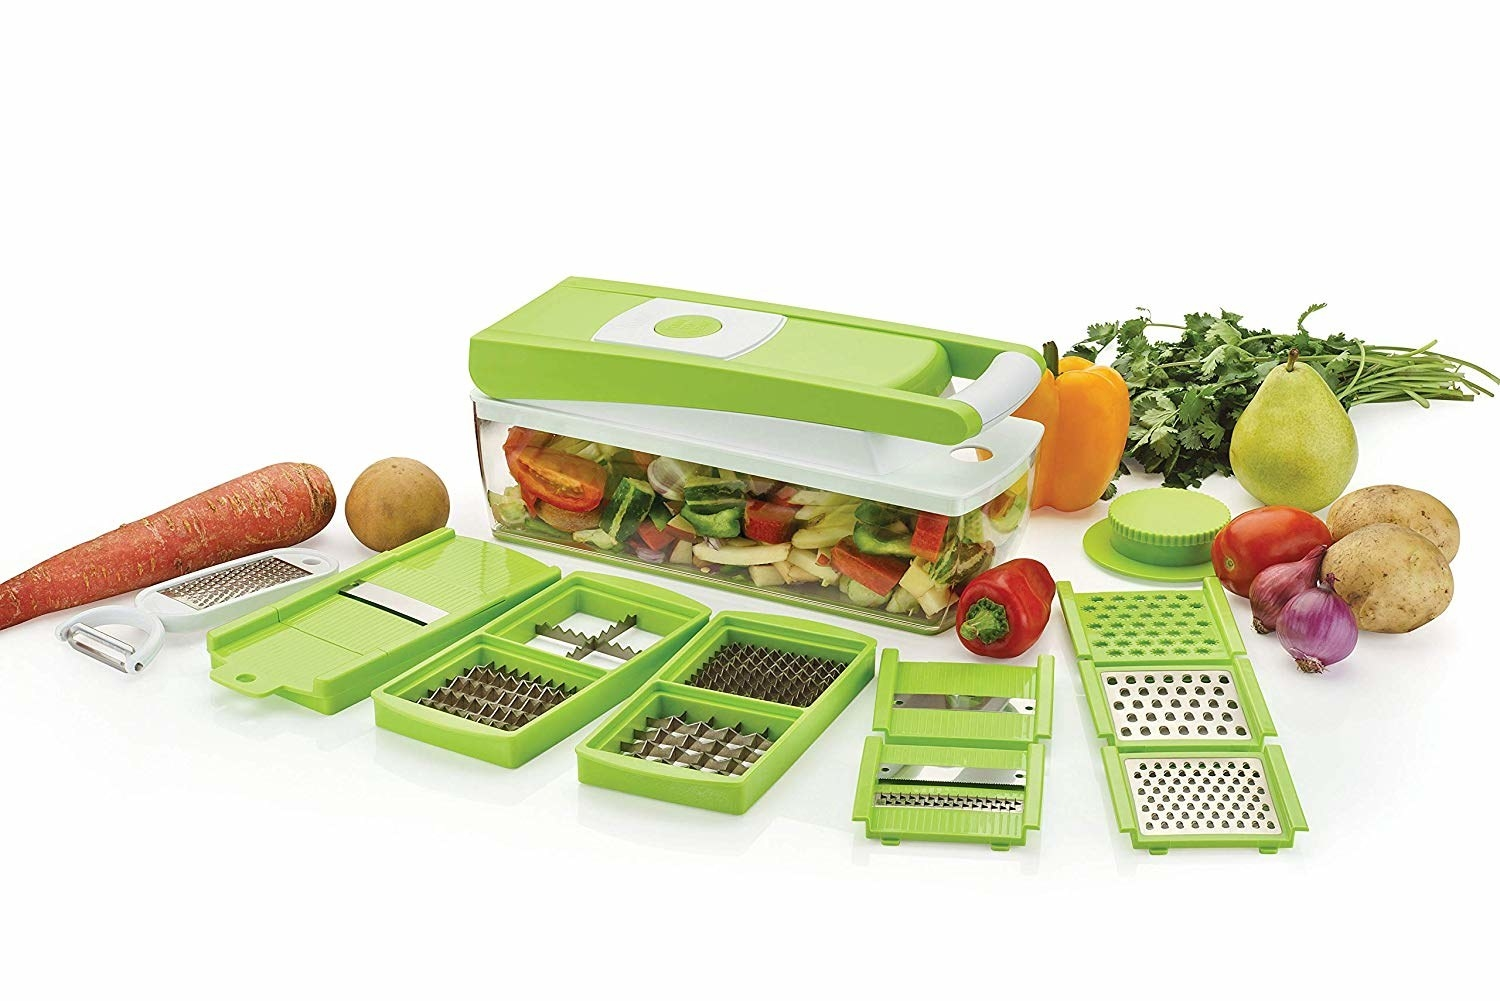 Vegetable chopper and grater with various vegetables